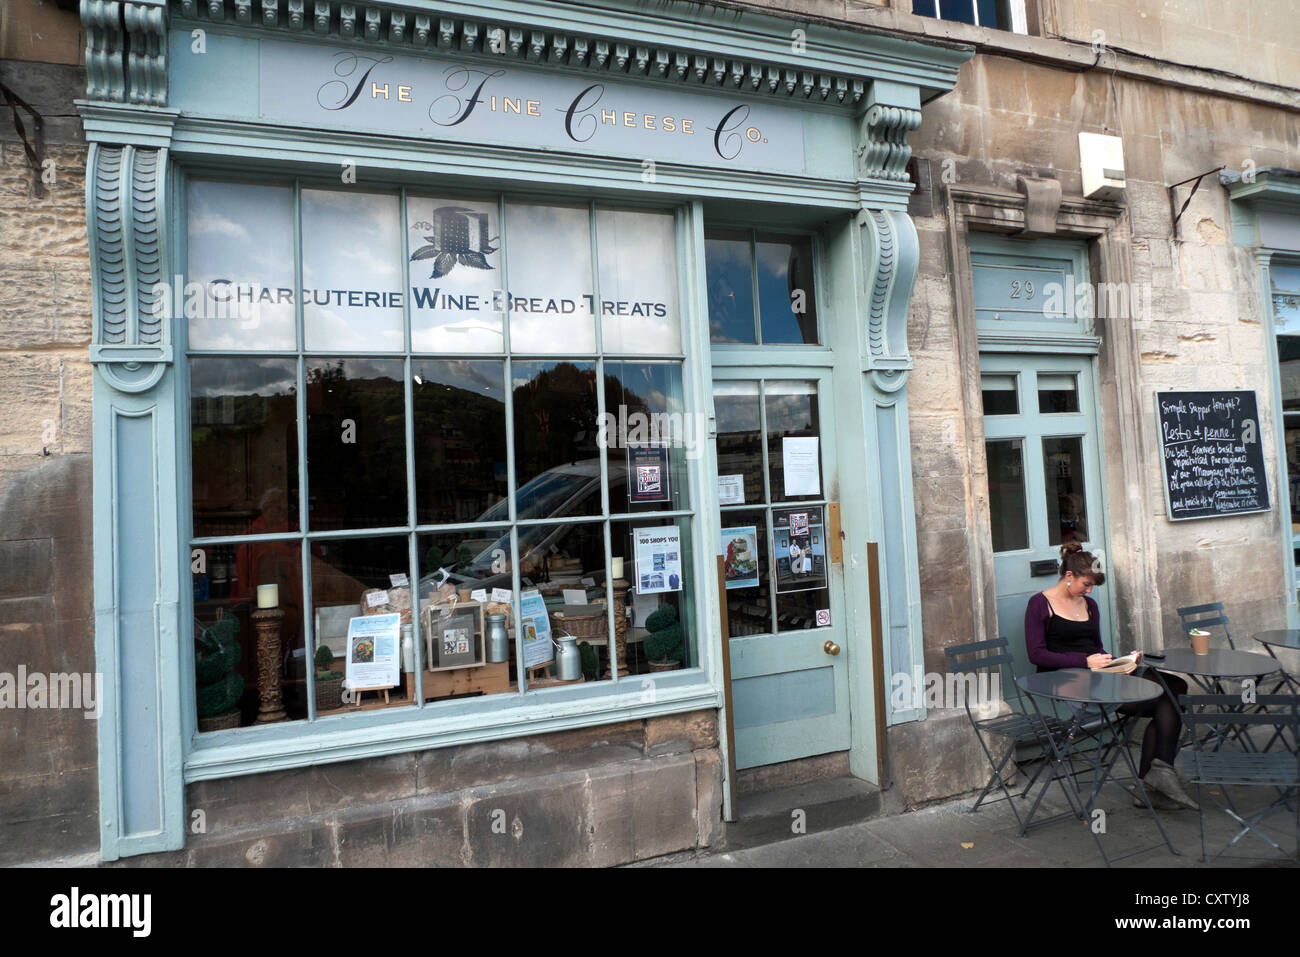 A woman sitting outside the Fine Cheese Company on Walcot Street in the City of Bath, Avon, Somerset, England KATHY - Stock Image